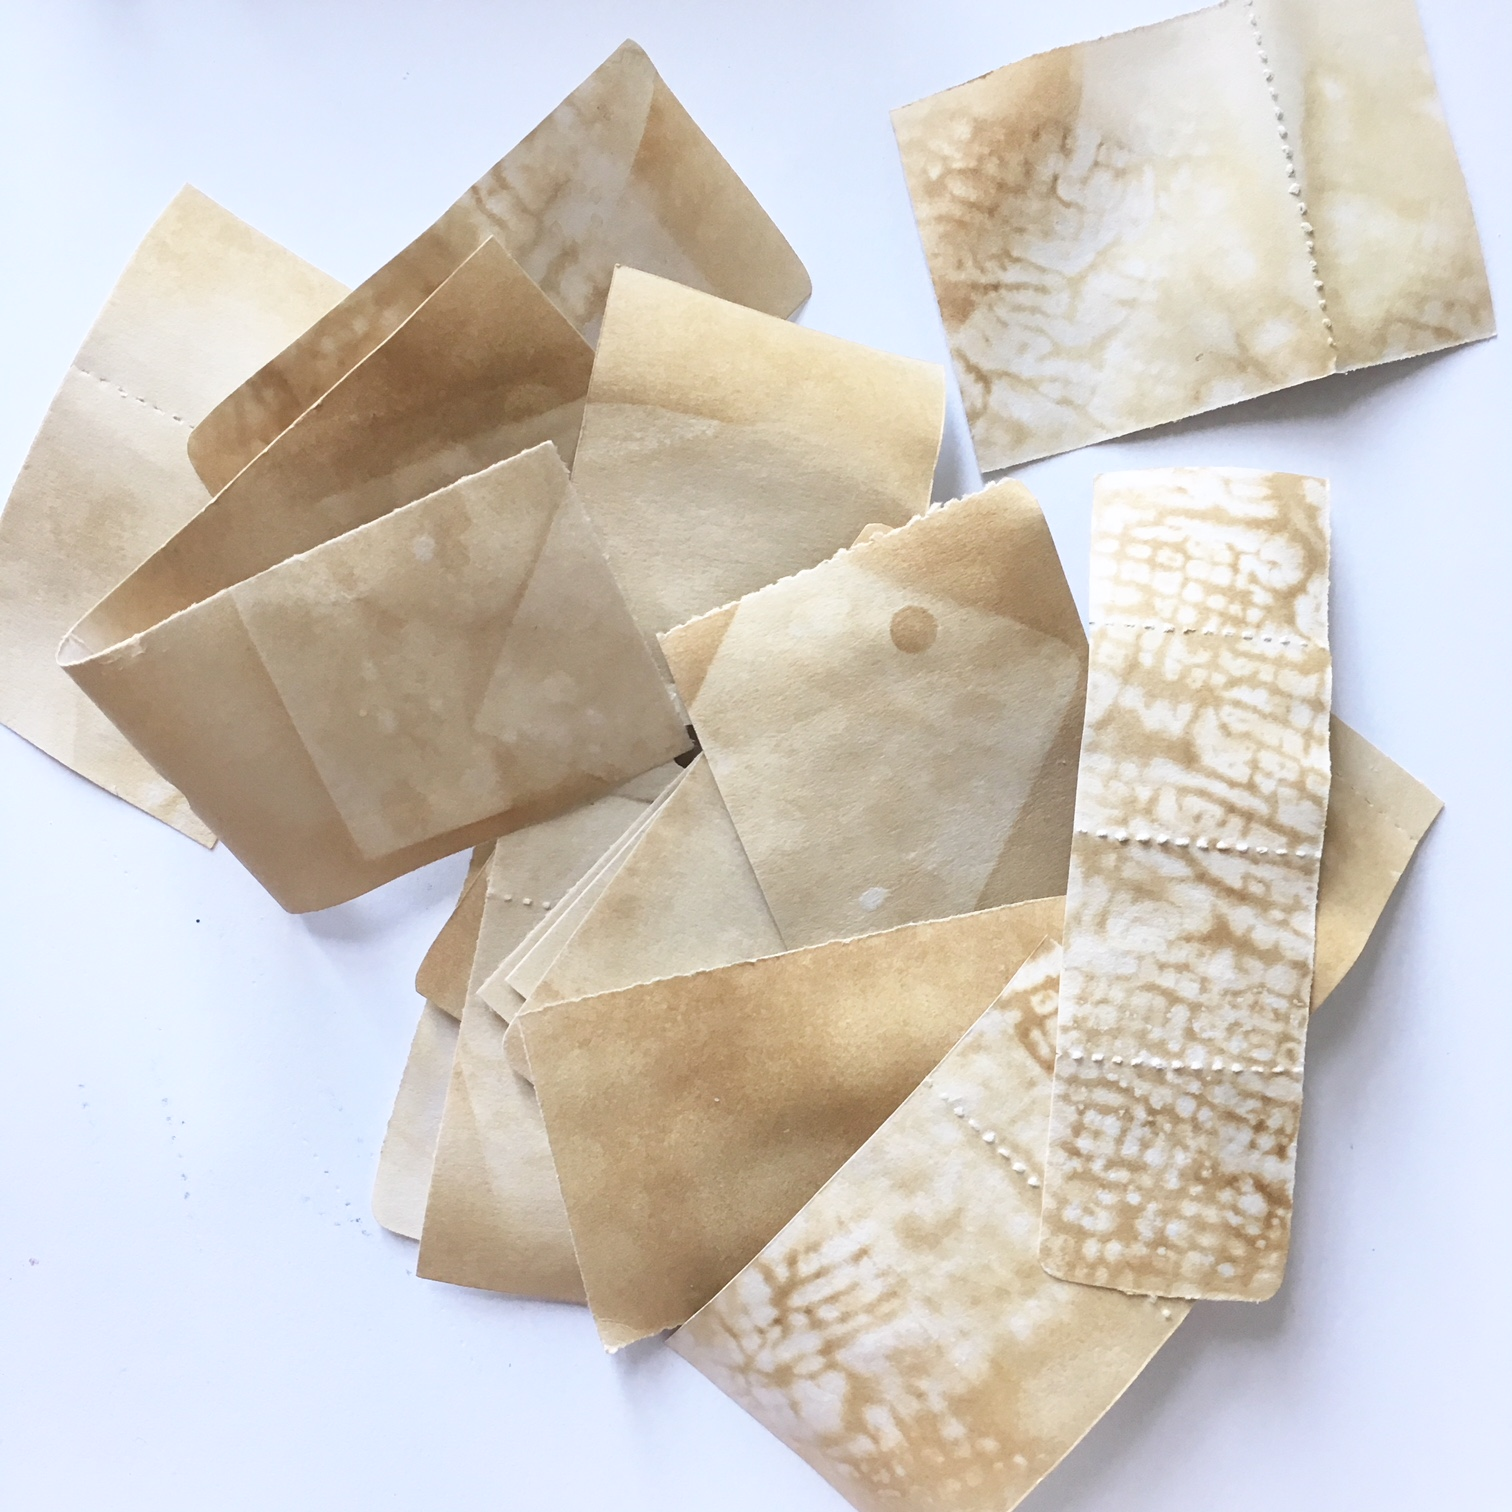 dried coffee tinted pieces of paper